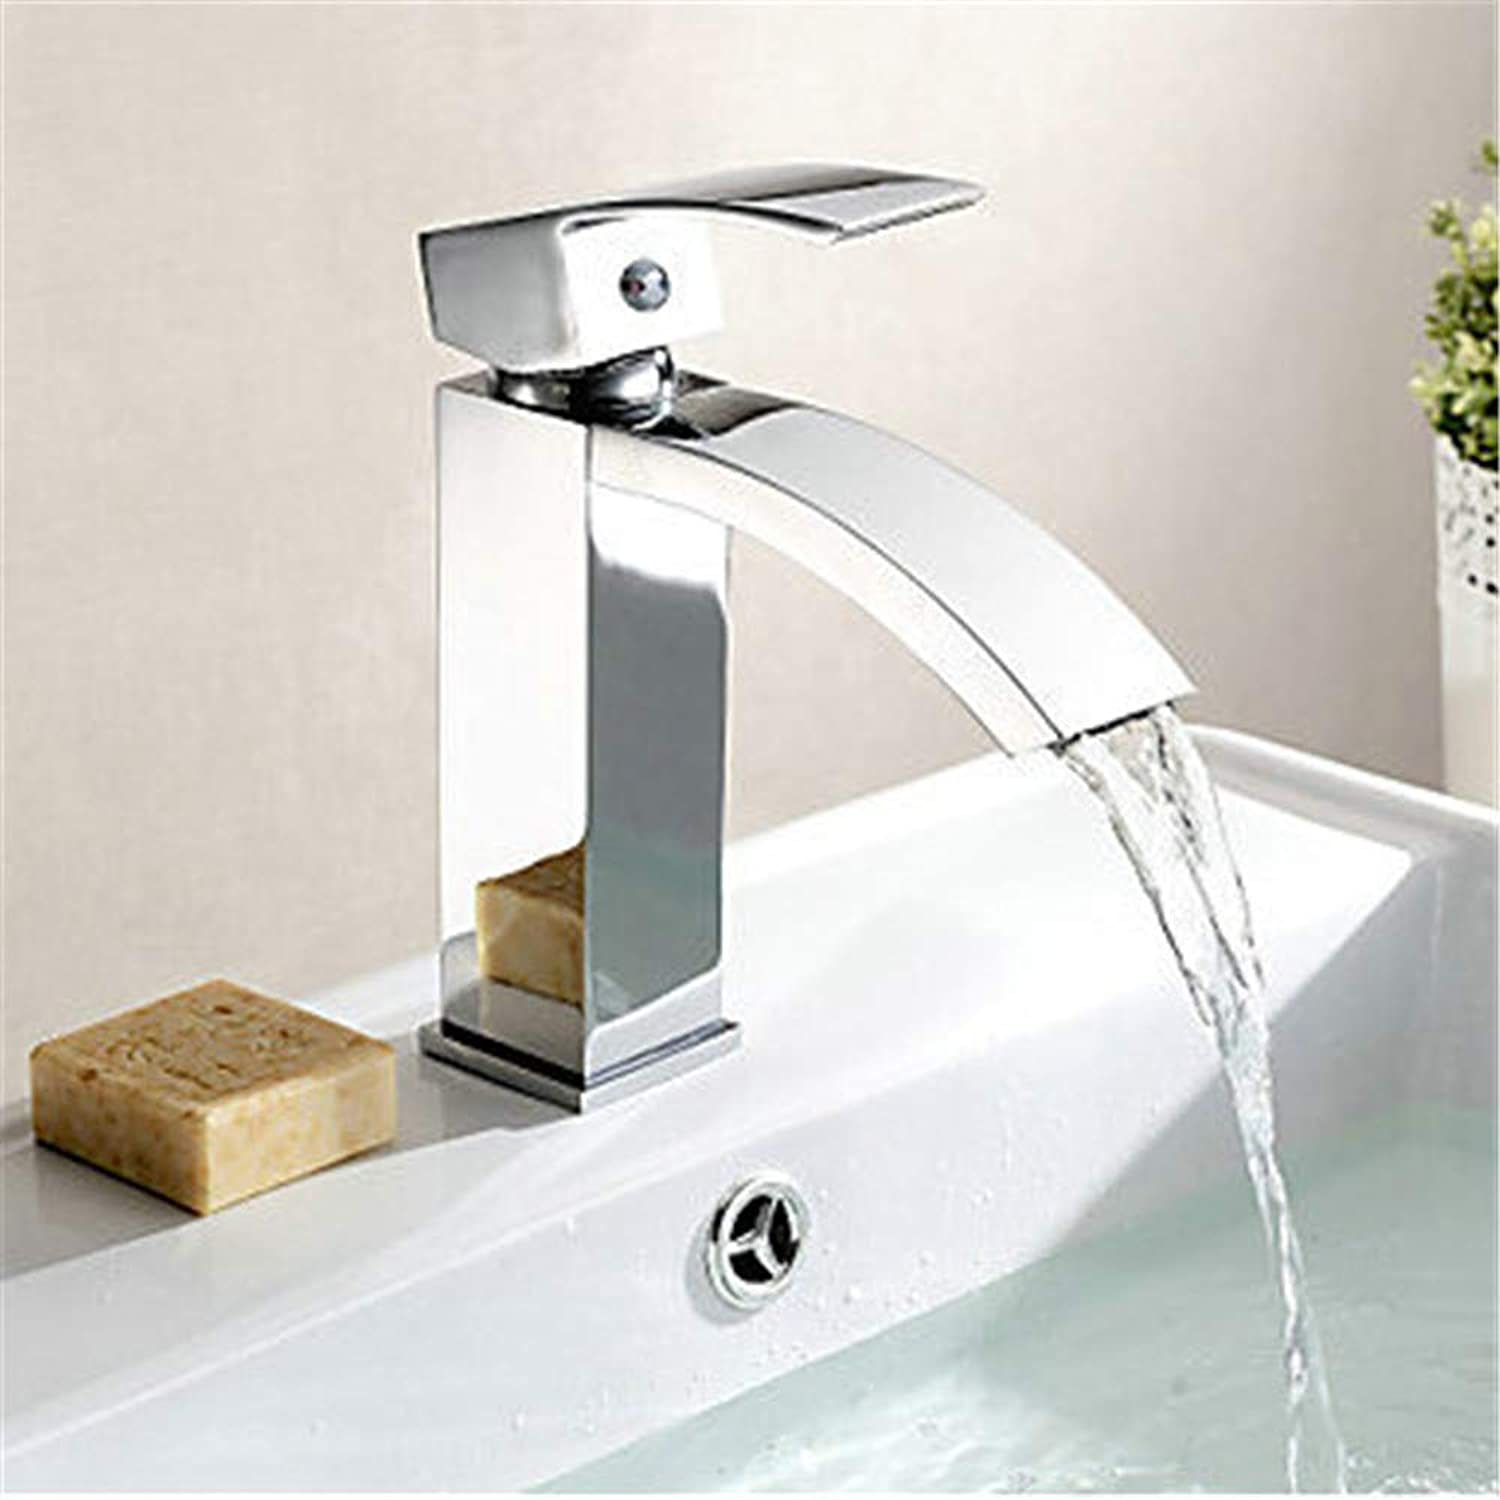 YAWEDA Bathroom Basin Faucet Brass Basin Mixer Tap Chromed Polished Waterfall Faucets Single Handle Hot and Cold Water Mixer Bathroom Sink Faucet